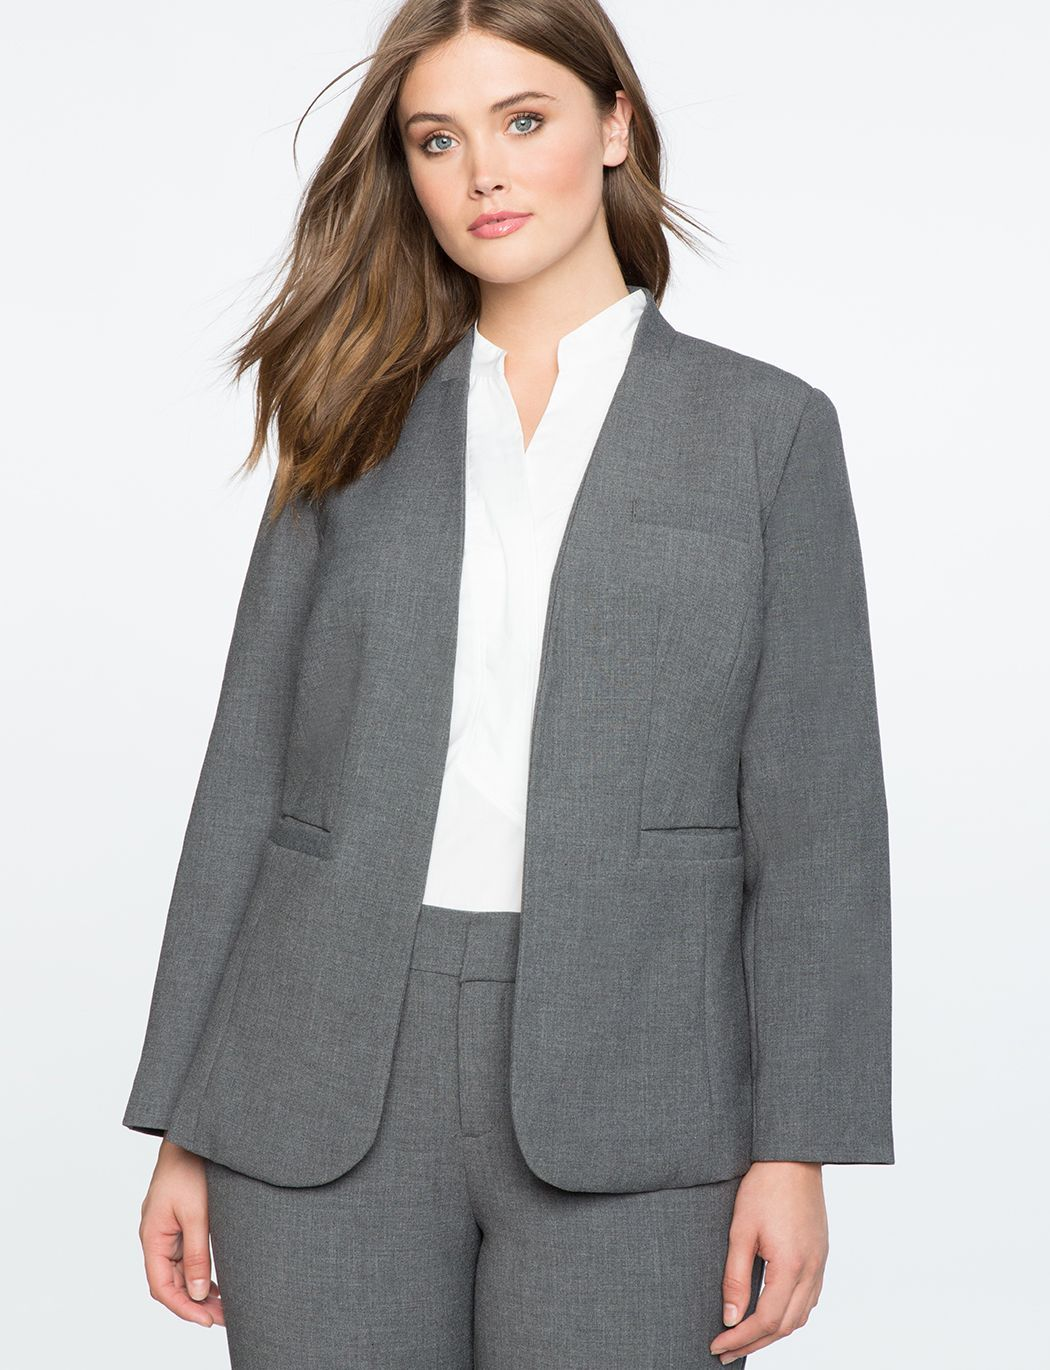 21fdff5247ed3 Charcoal Heather Kiss Front Blazer Charcoal Heather. Charcoal Heather Kiss  Front Blazer Charcoal Heather Plus Size Blazer